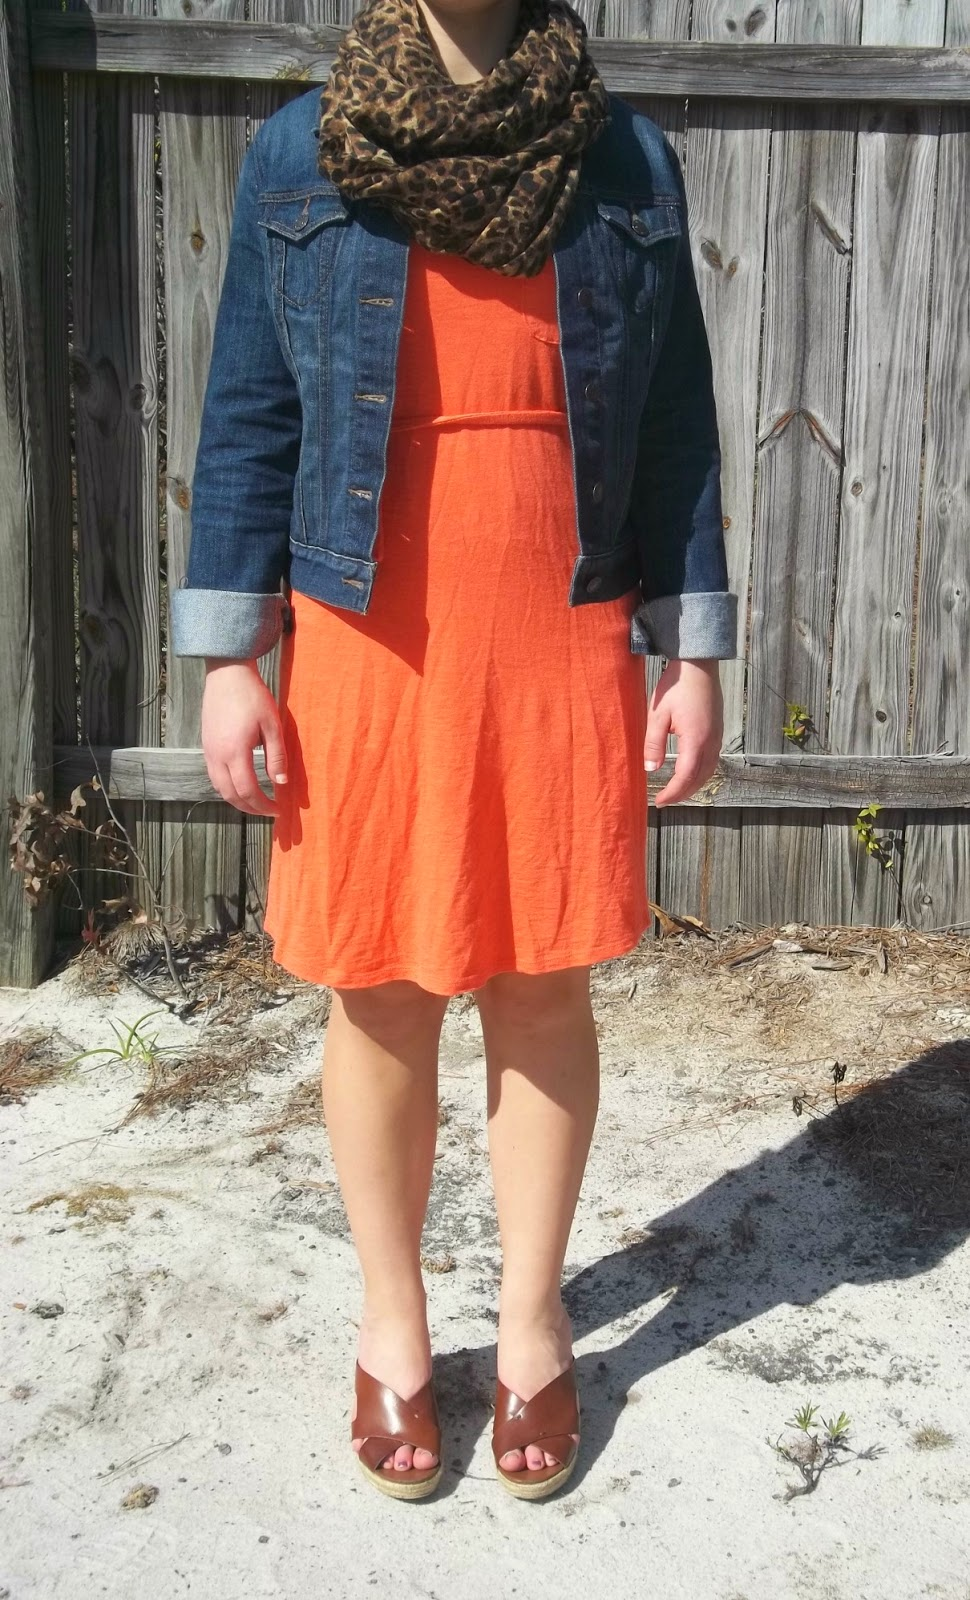 Coral and Leopard. http://mybowsandclothes.blogspot.com. Coral t-shirt dress, denim jacket, leopard scarf, brown wedges. #coral #outfitpost #outfit #outfitinspiration #BowsandClothes #leopard #spring #style